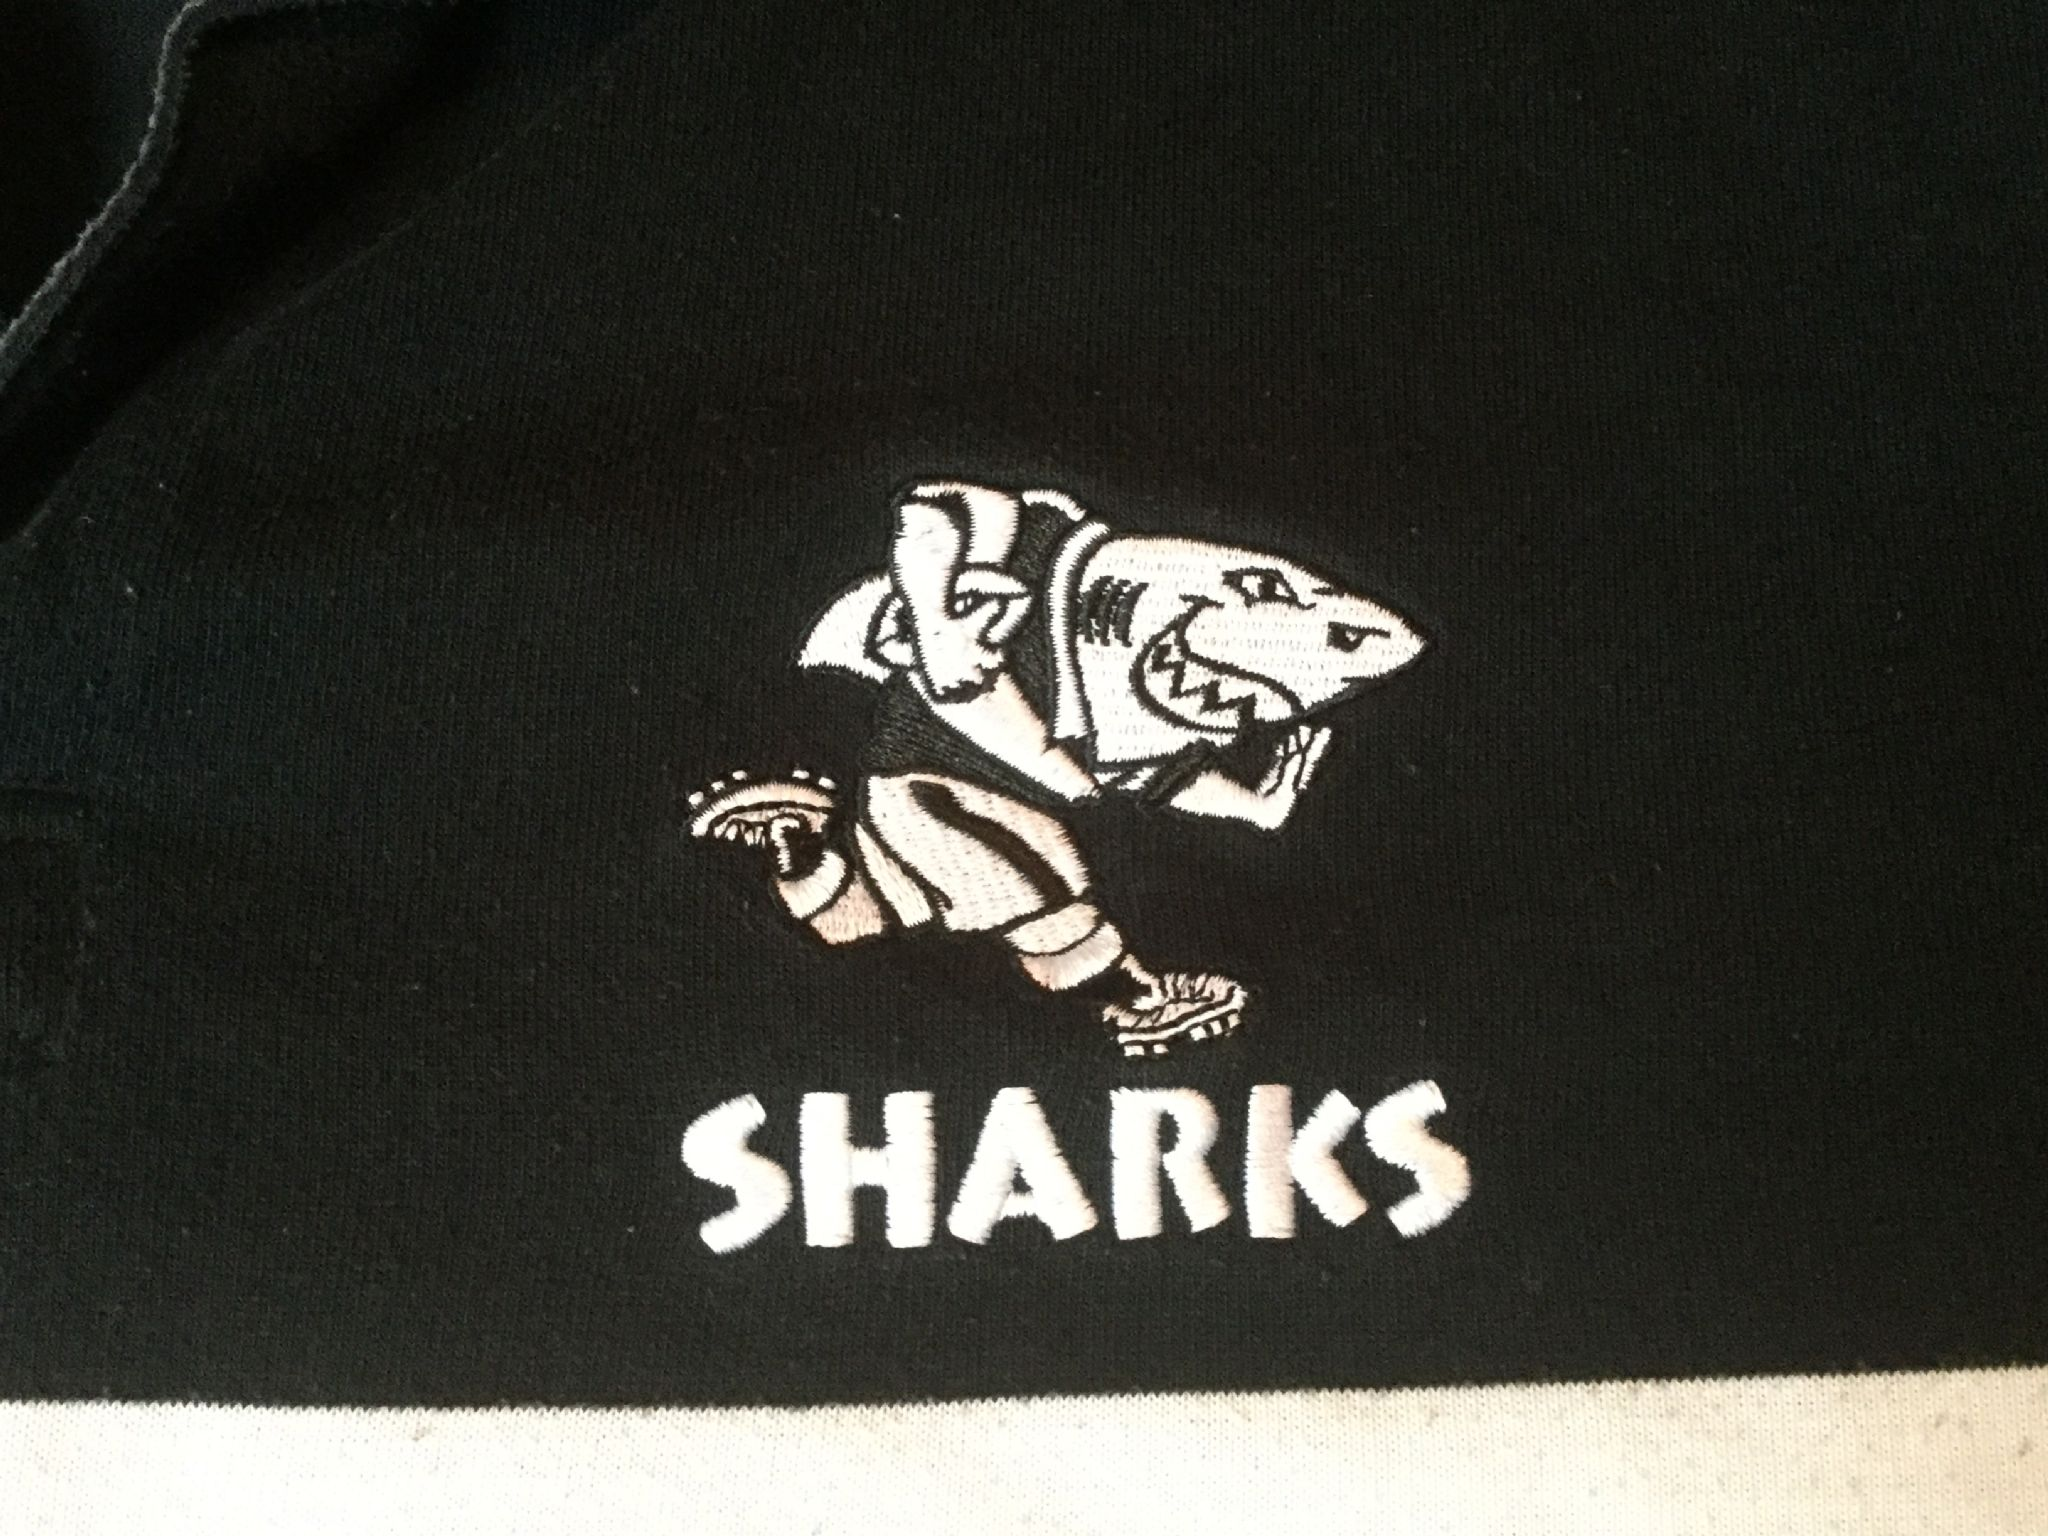 Rugby digger - transfer news and rumours: Bath Sharks rugby logo pictures